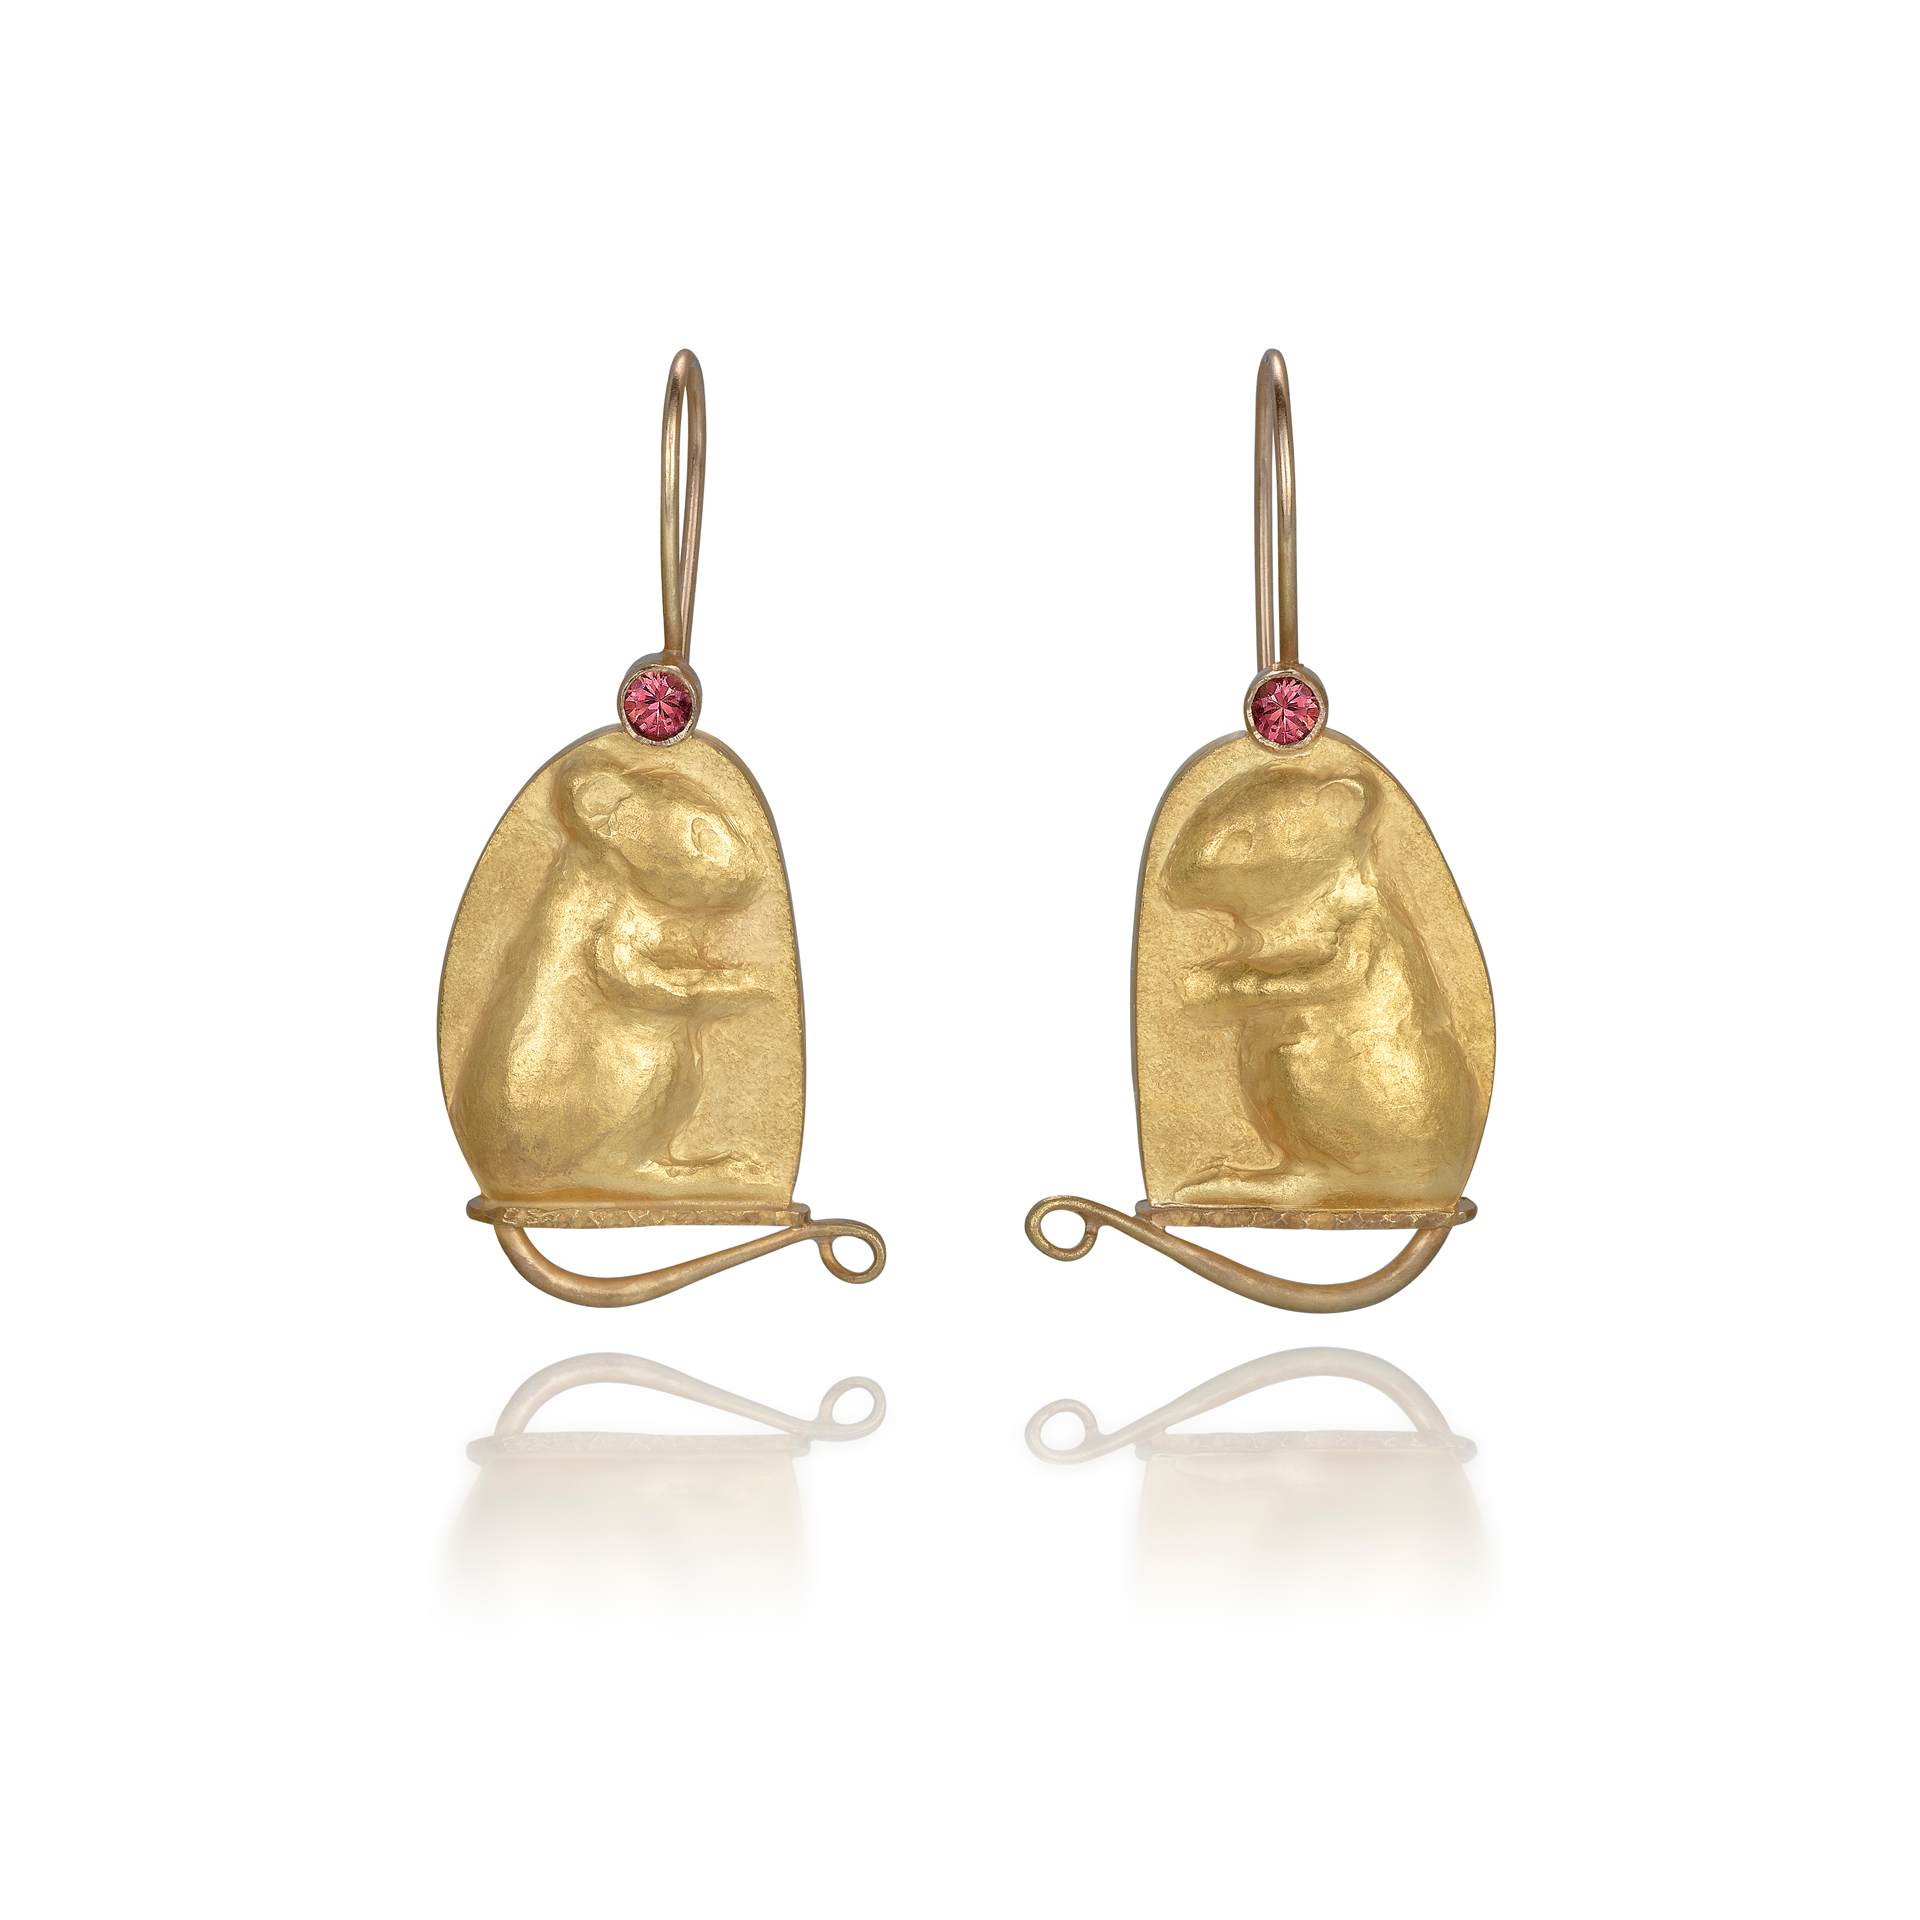 Mice Earrings